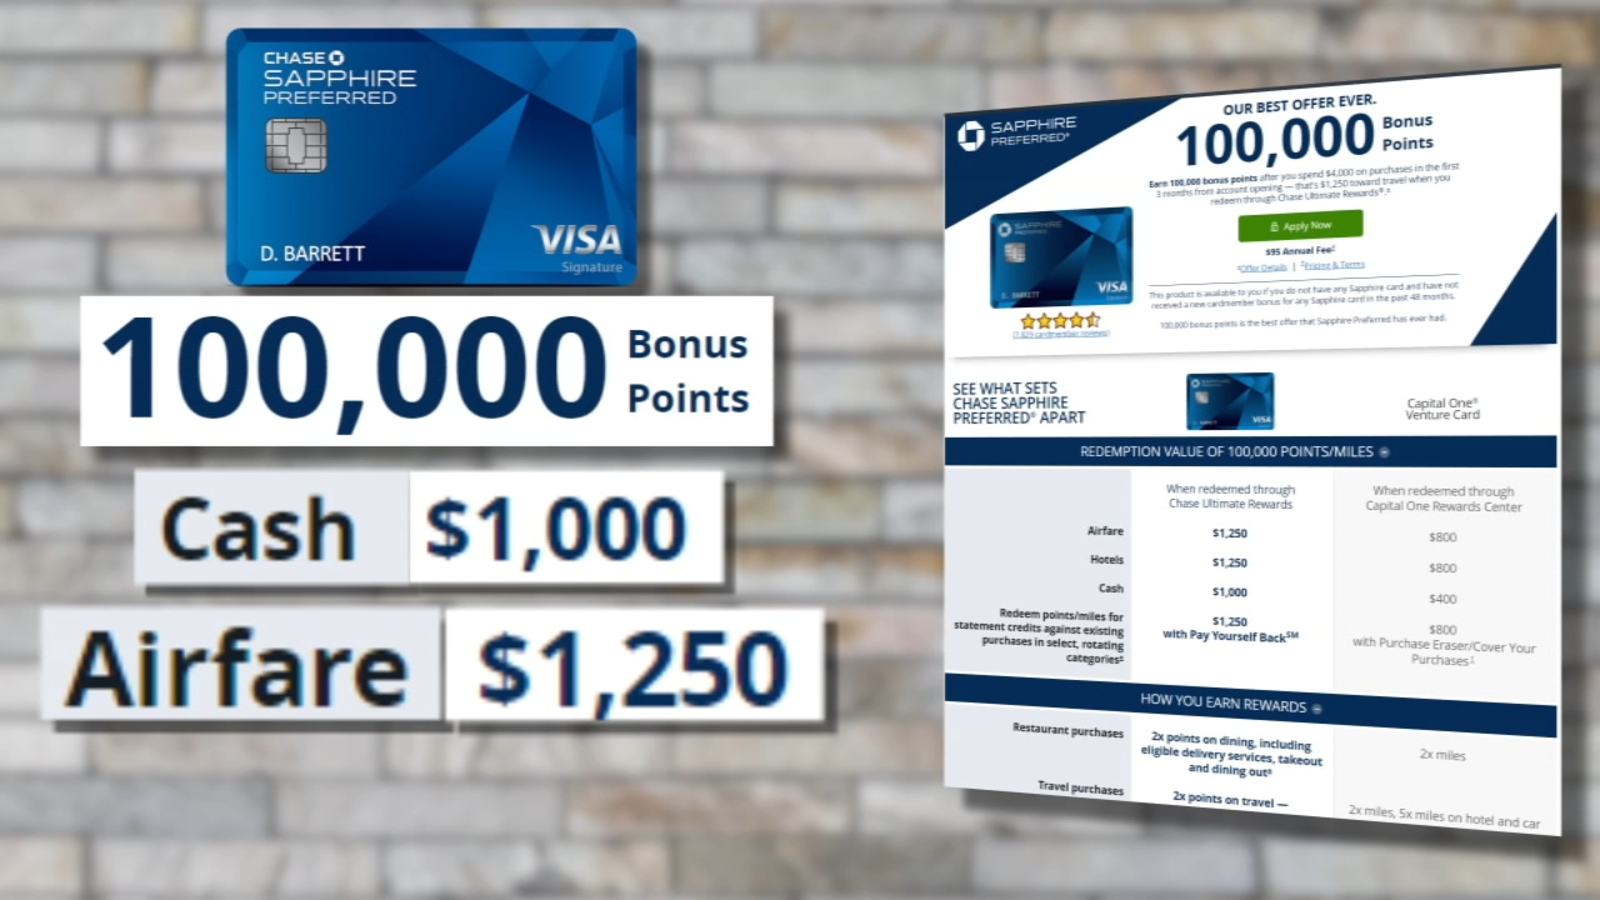 7 On Your Side: Getting the best deals with travel rewards credit cards - ABC7 New York